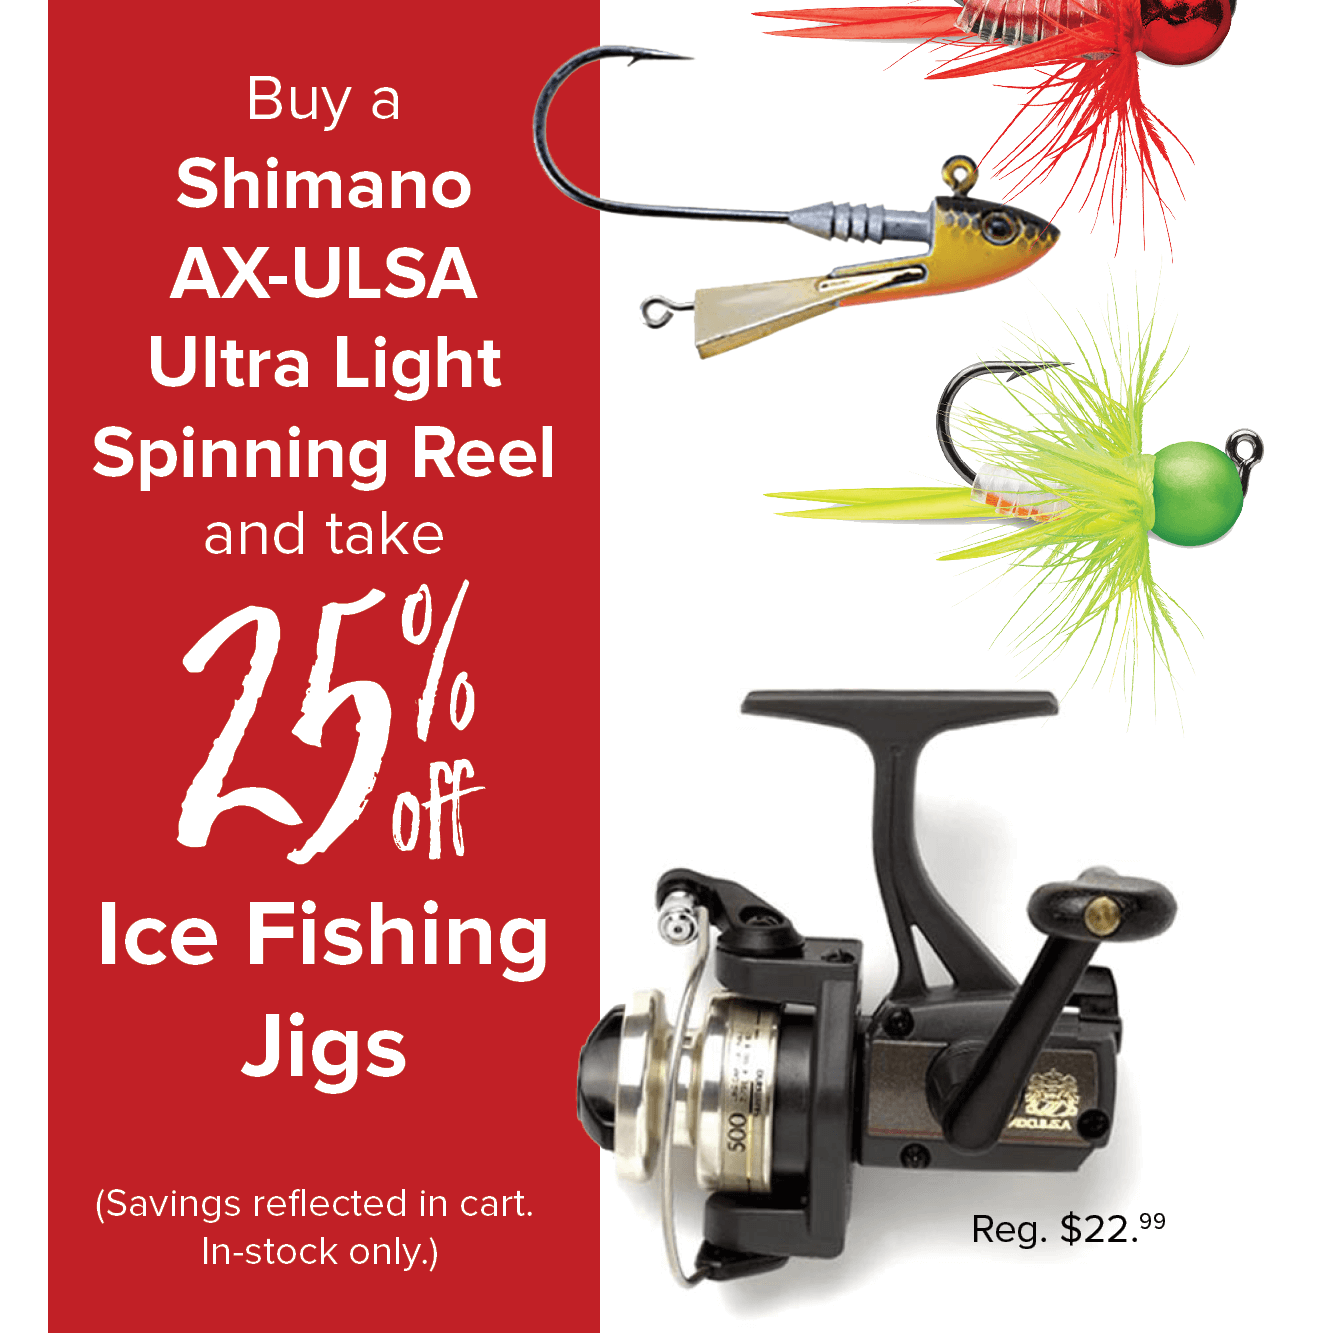 Buy a Shimano AX-ULSA Ultra Light Spinning Reel and take 25% off Ice Fishing Jigs